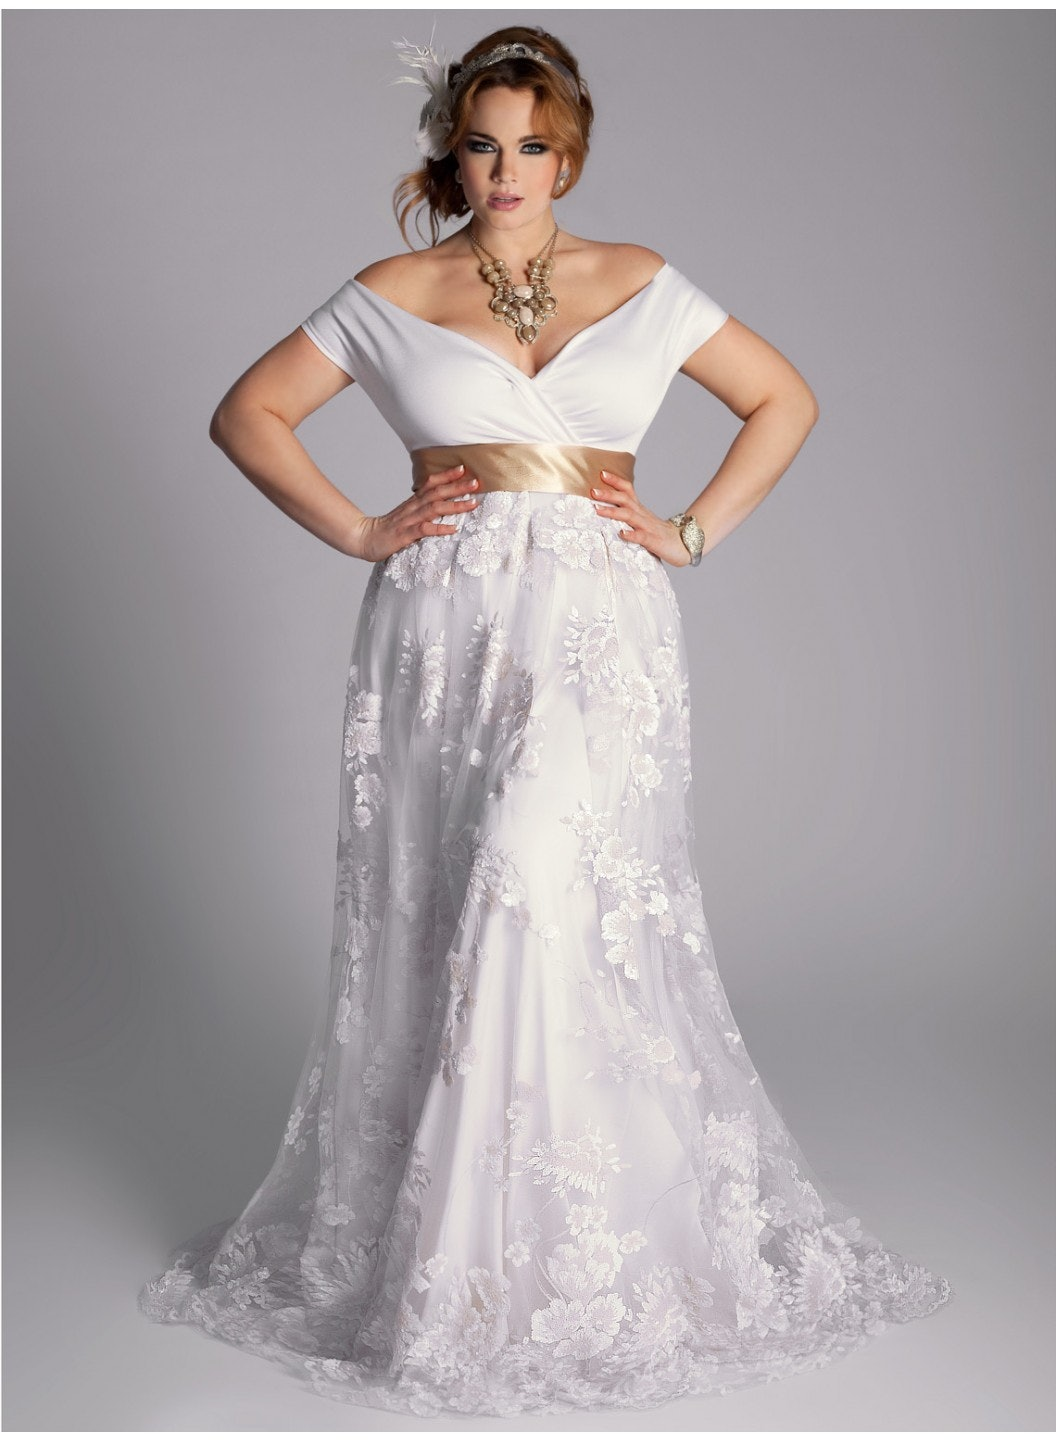 25 stunning plus size wedding dresses for every style of nuptial affair plus size wedding gowns 25 Stunning Plus Size Wedding Dresses For Every Style Of Nuptial Affair